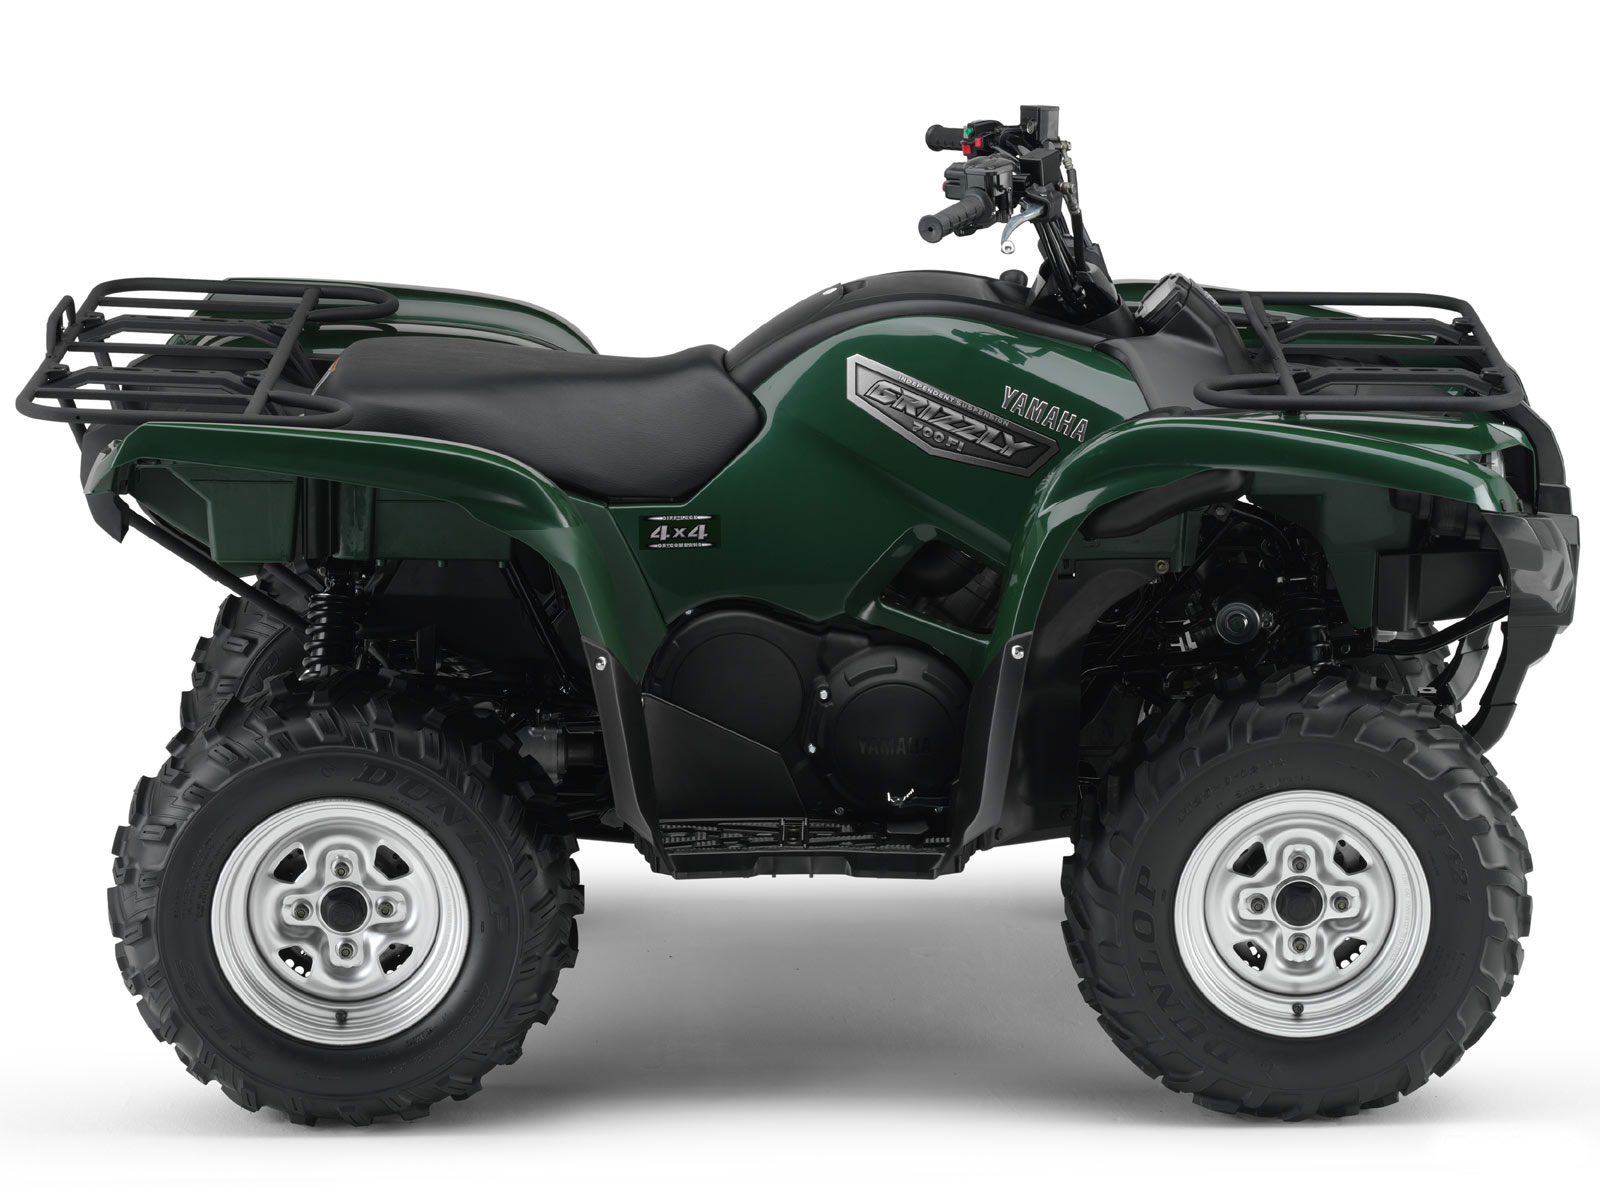 2007 yamaha grizzly 700 fi 4x4 automotic wallpapers